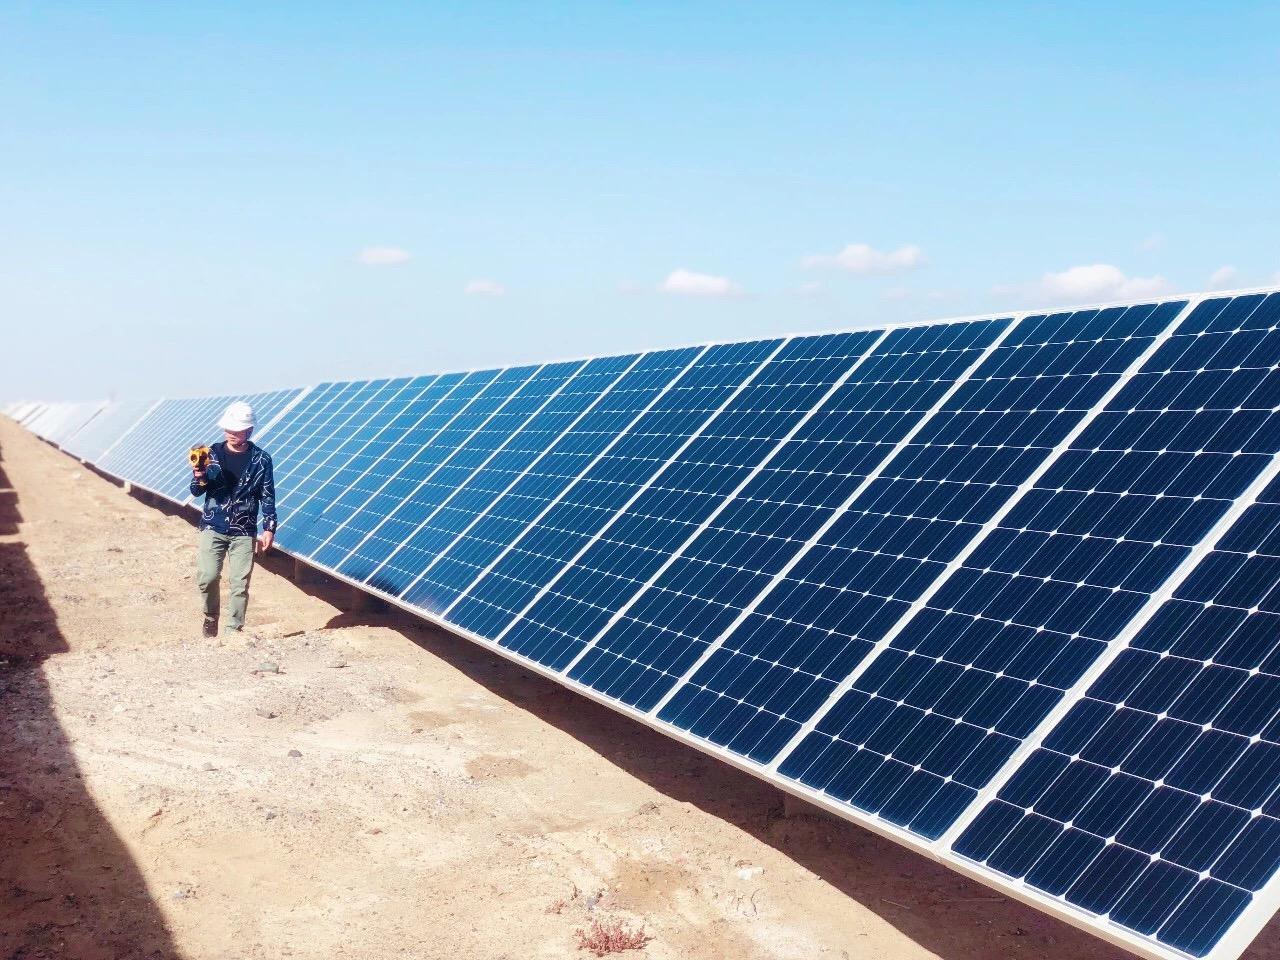 The SMSL said that the project was financed by one of the world's top commercial banks in Japan. Image: LONGi Solar